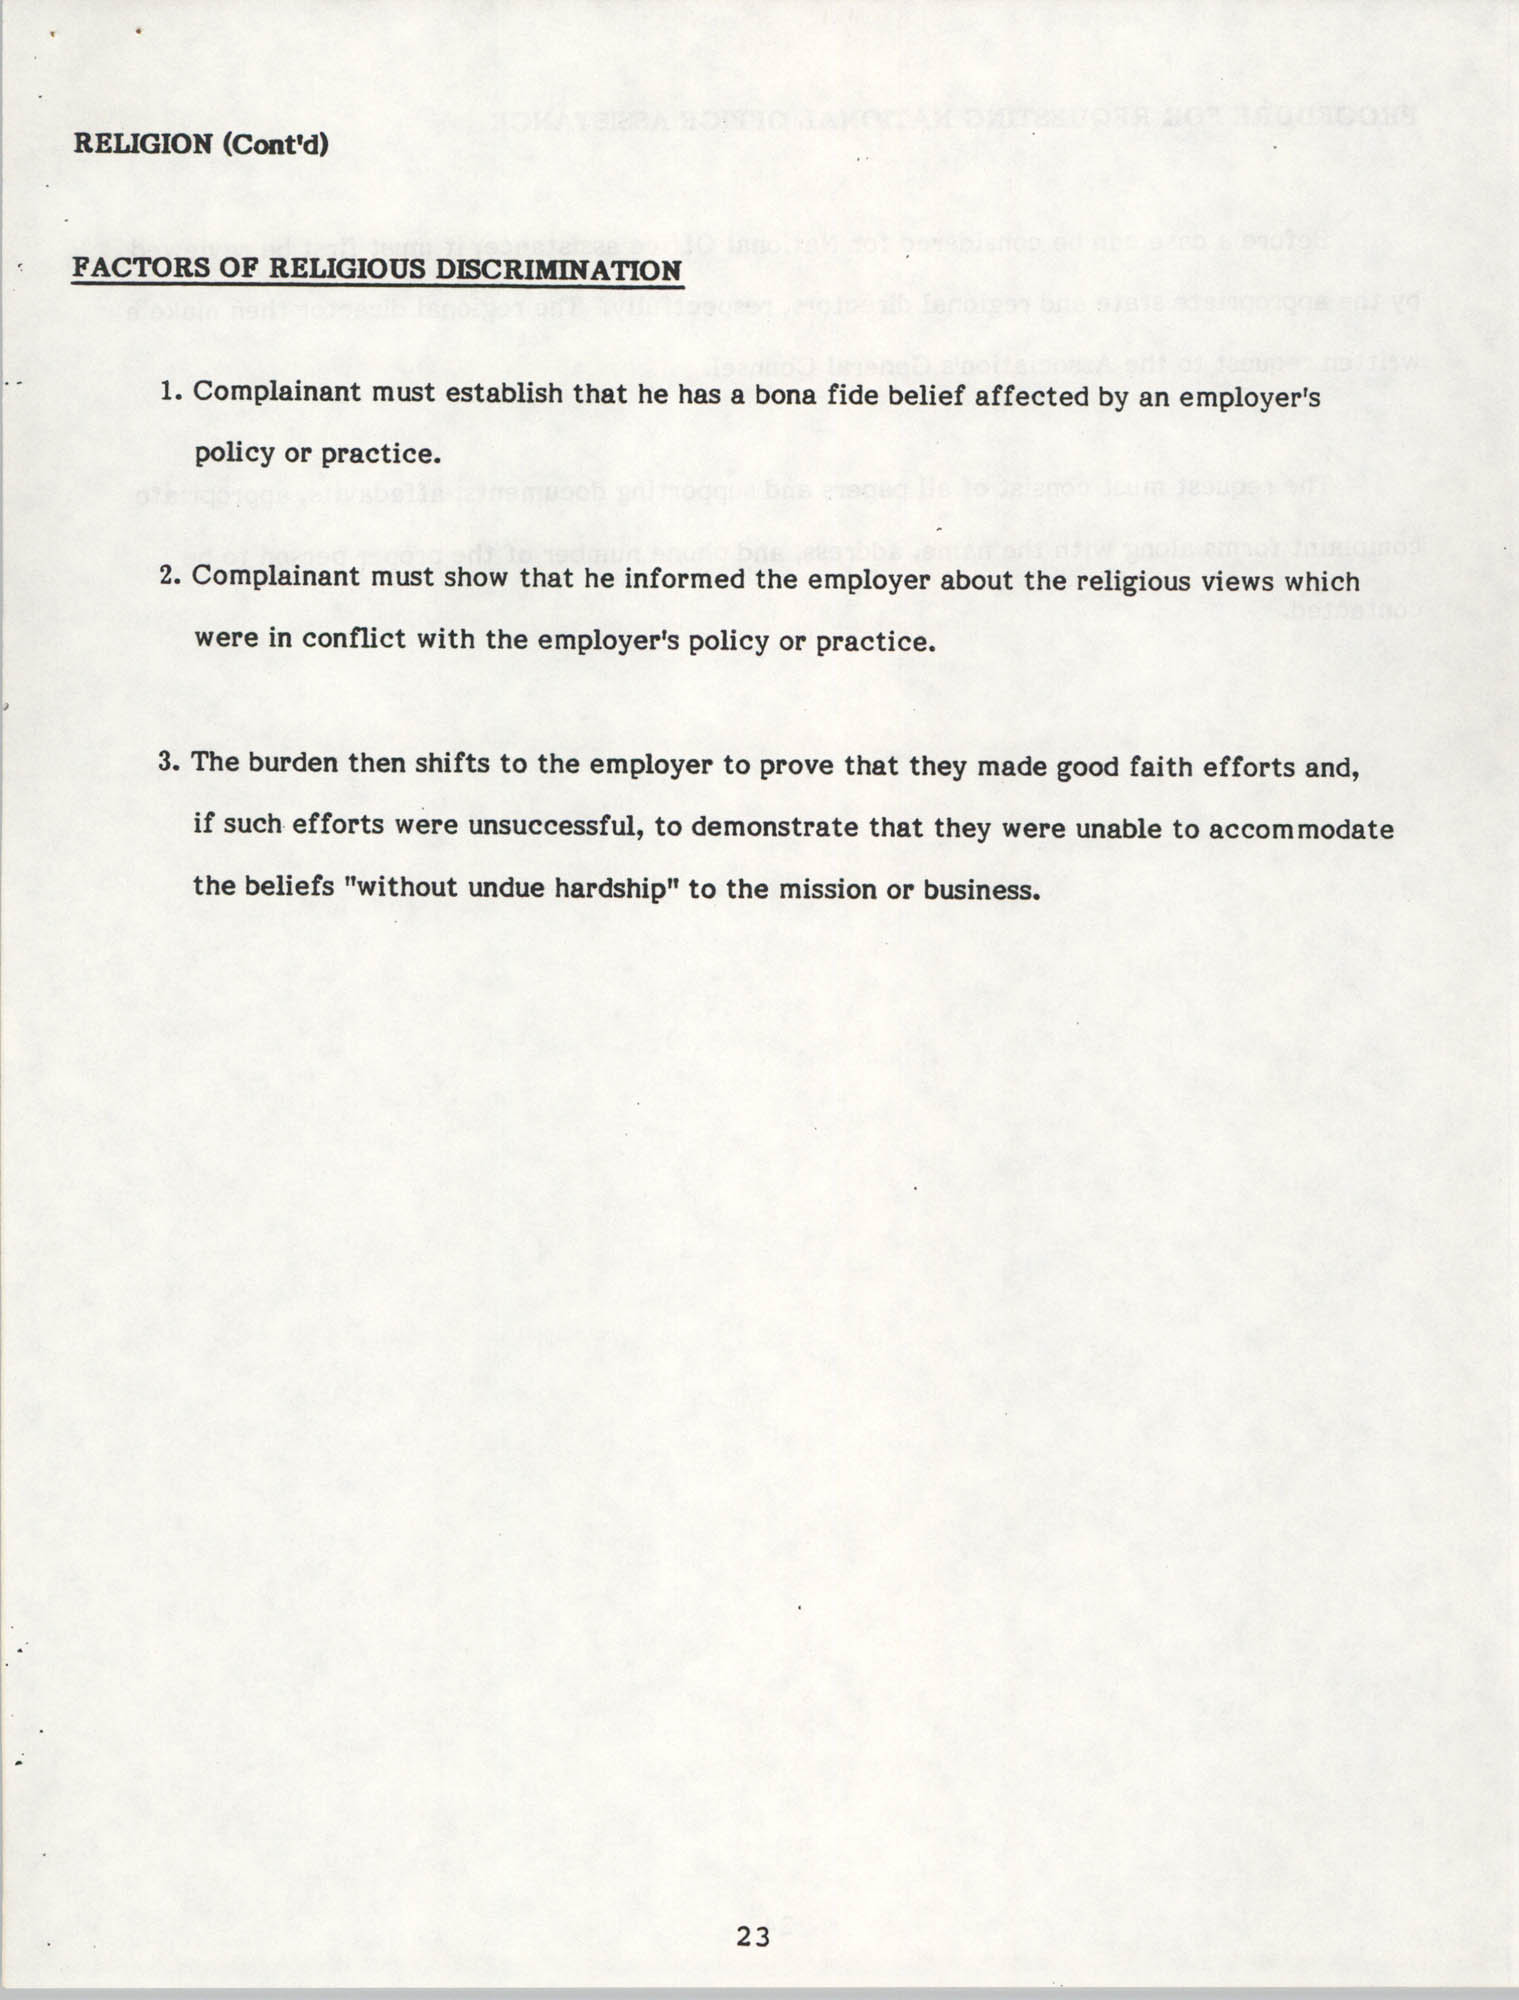 Handbook for Addressing Discrimination Complaints, NAACP Labor and Industry Committees, Page 23